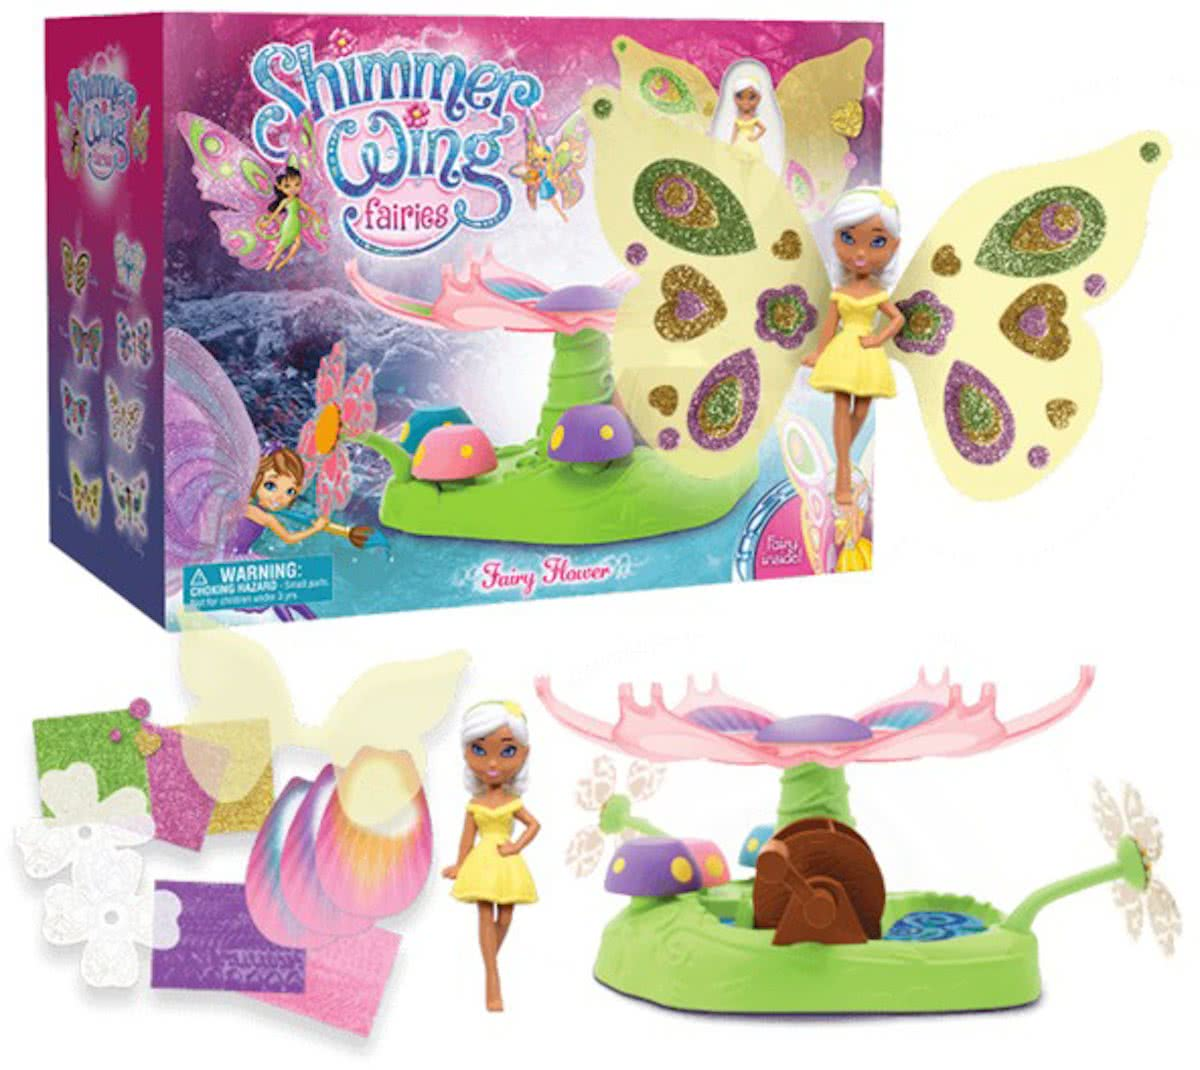 Shimmer Wing Fairies, Fairy Garden Playset